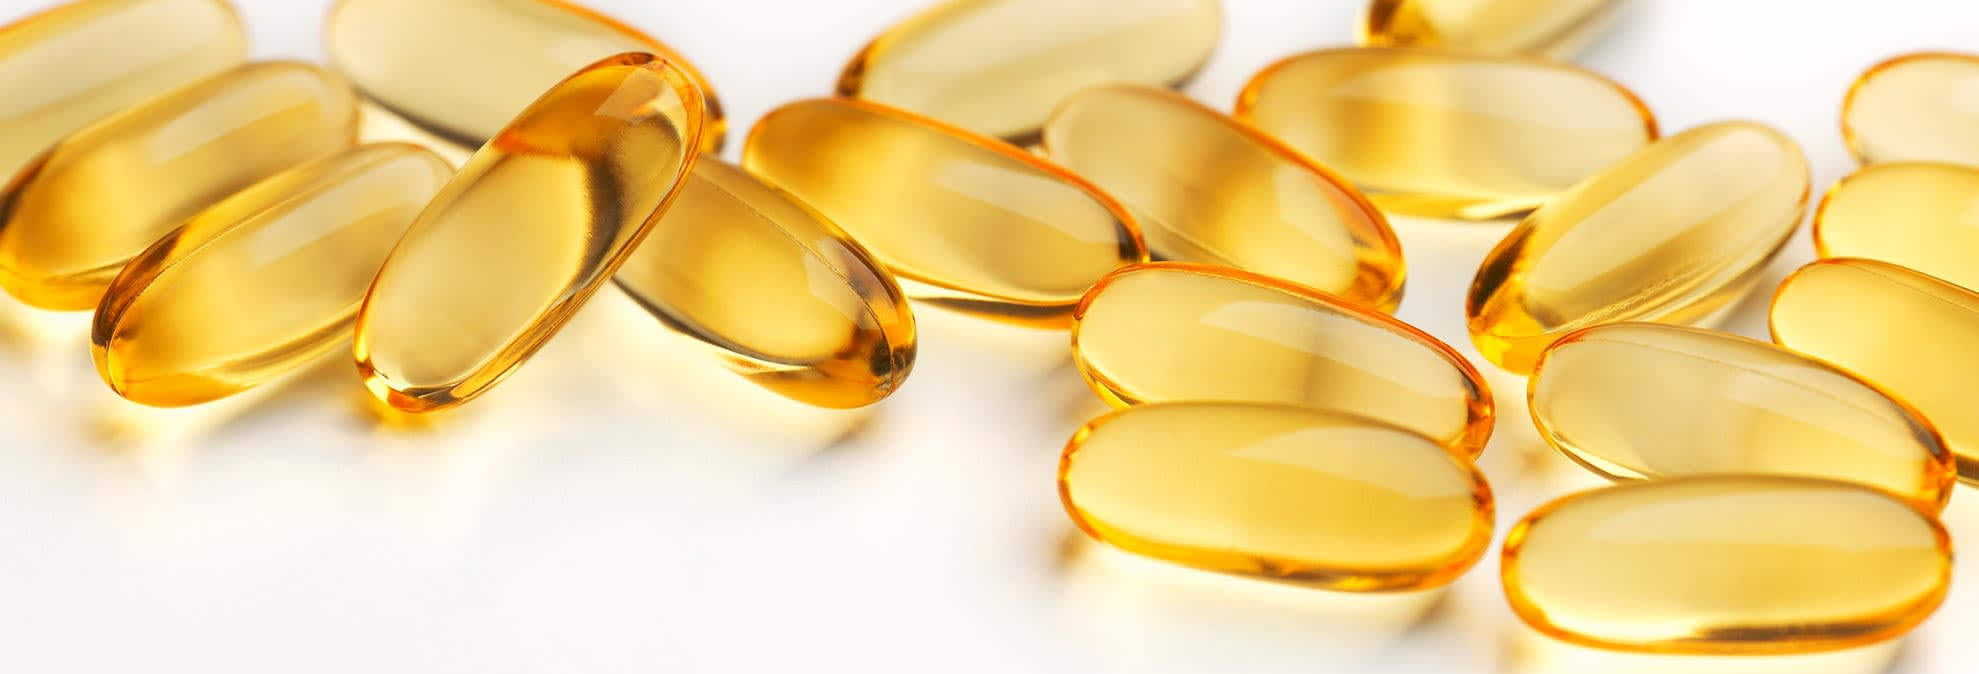 Fish oil pills do not prevent heart attacks consumer reports for Does fish oil lower blood pressure